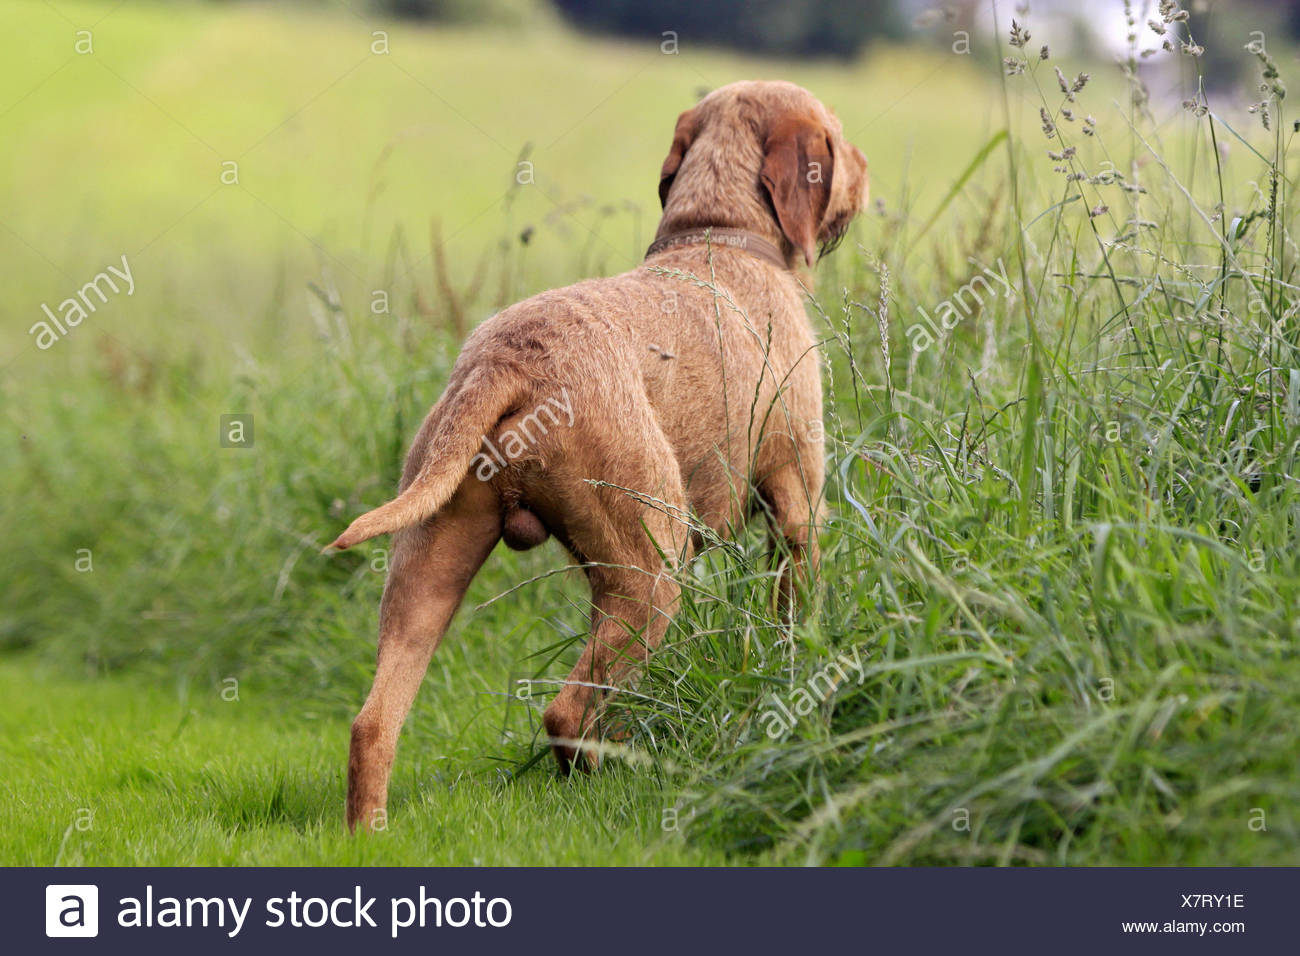 Wirehaired Magyar Vizsla dog - standing on meadow - Stock Image